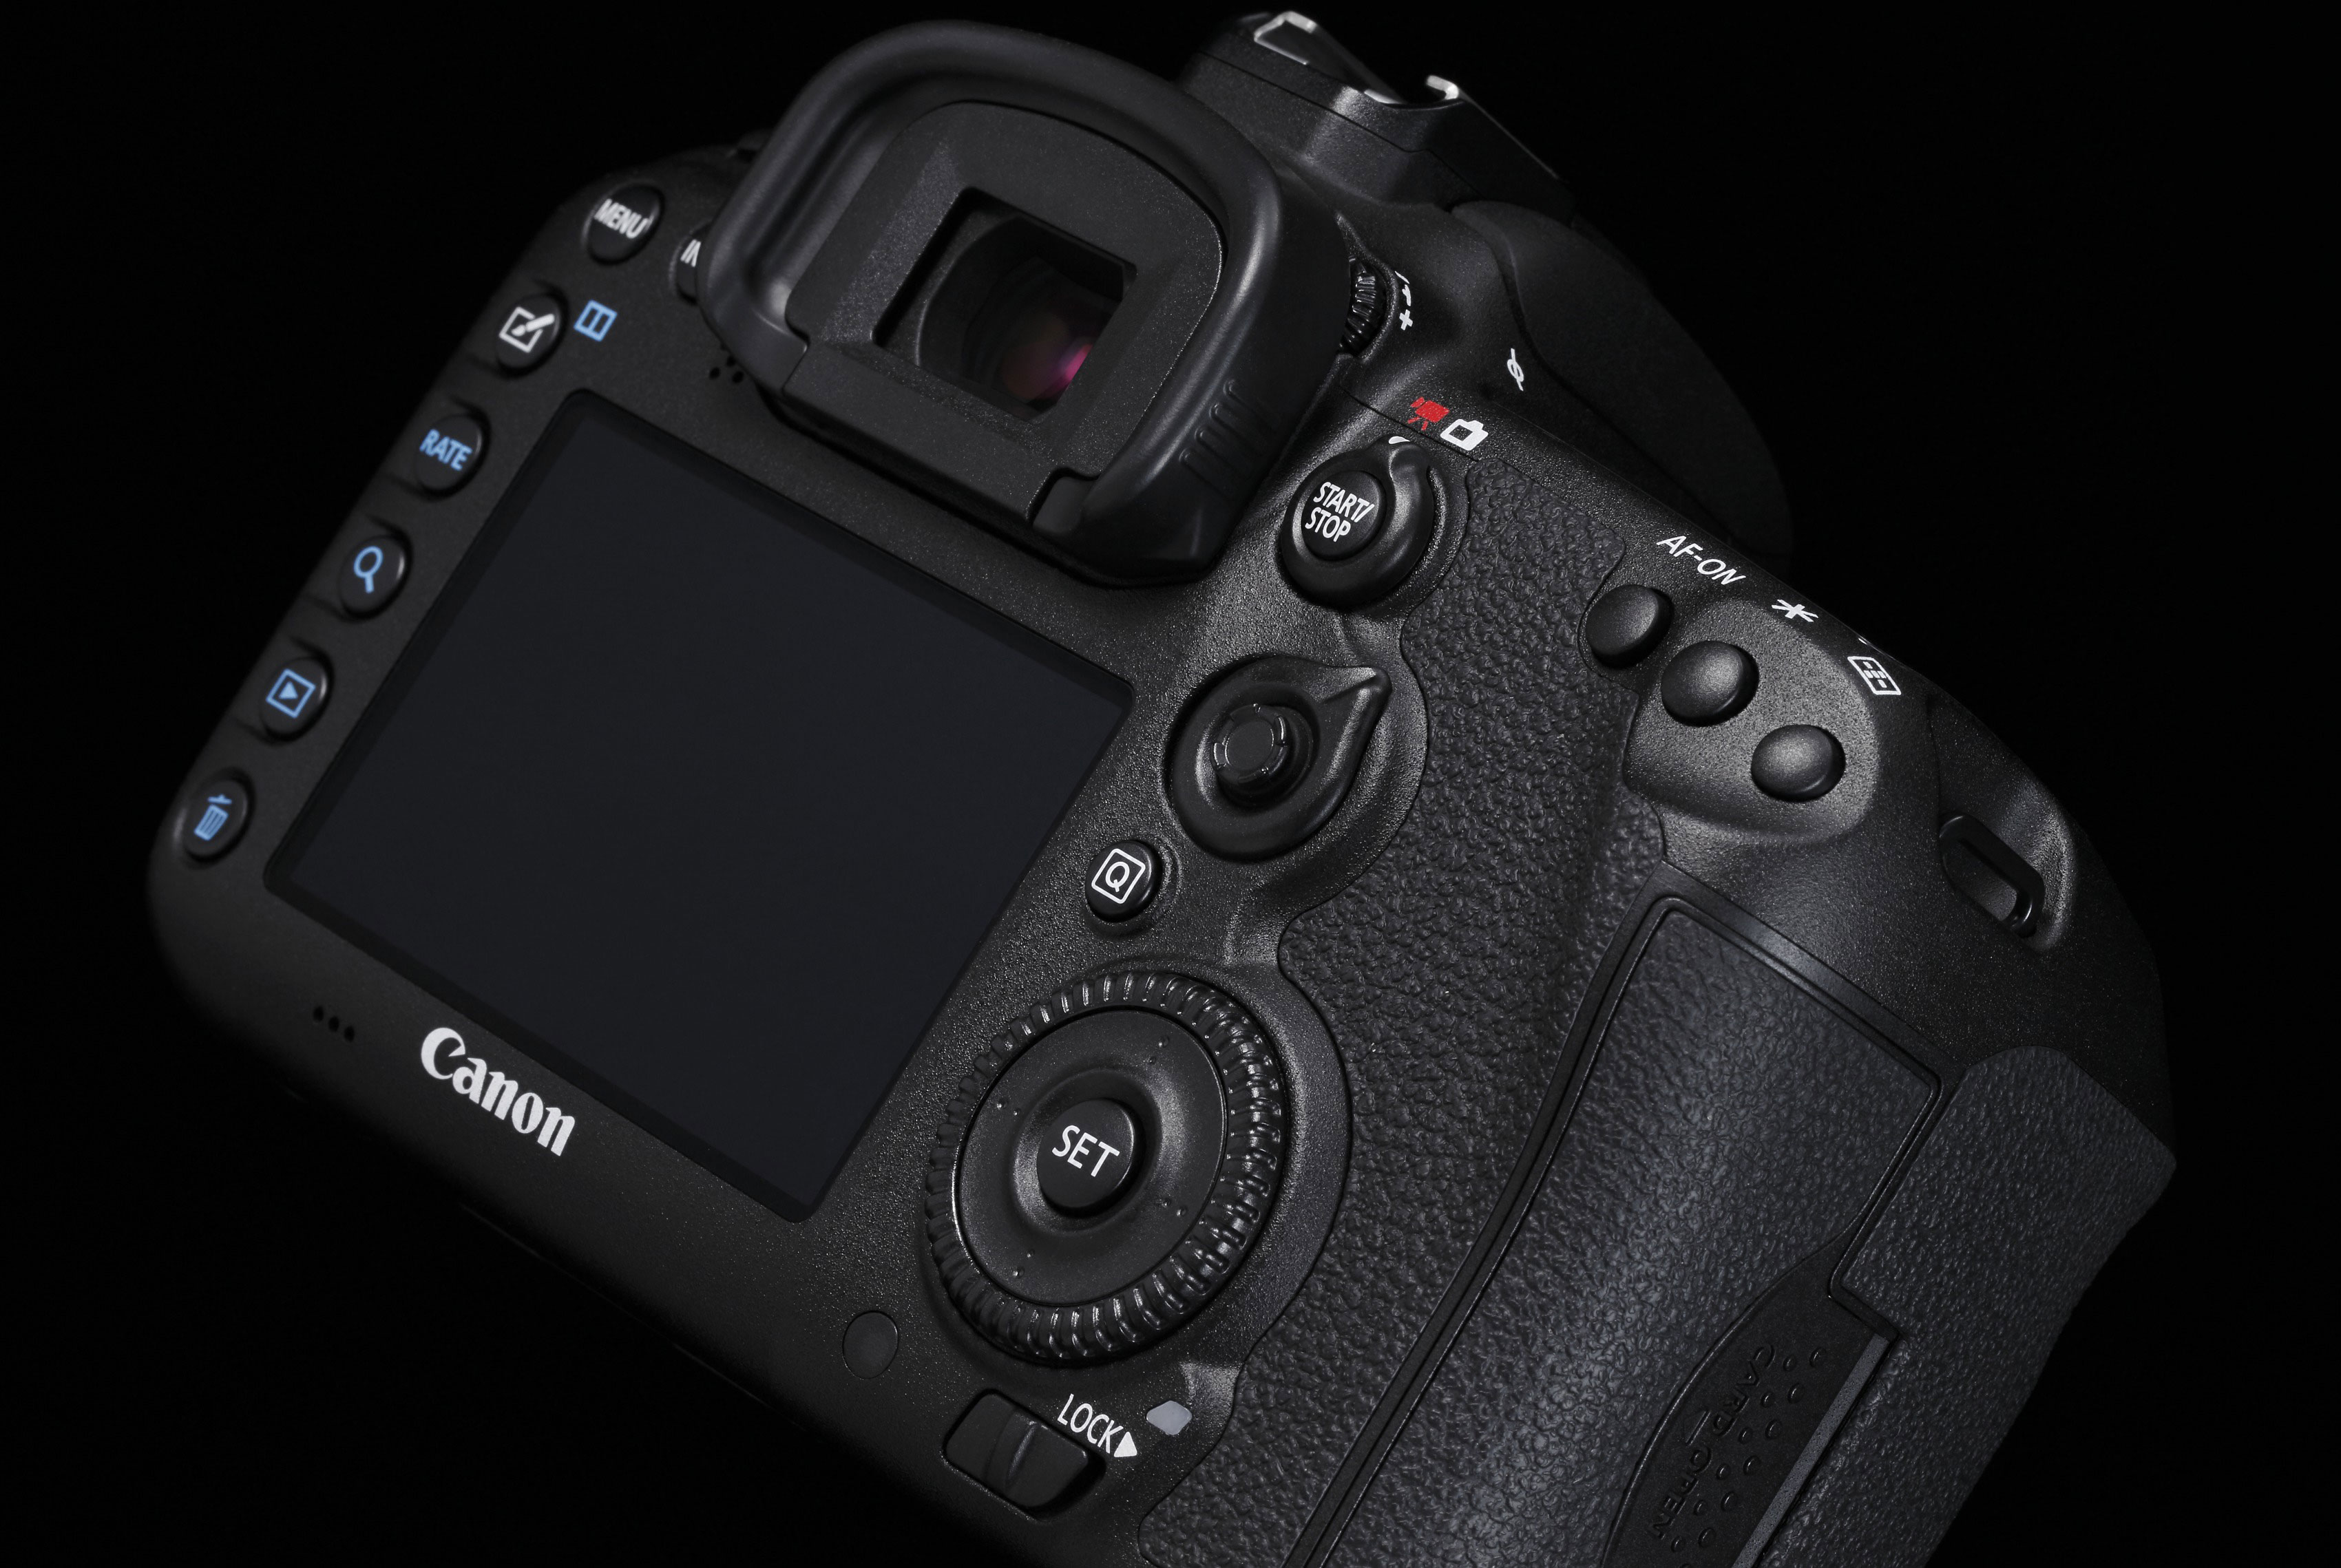 canon eos 7d mark ii review cameralabs. Black Bedroom Furniture Sets. Home Design Ideas